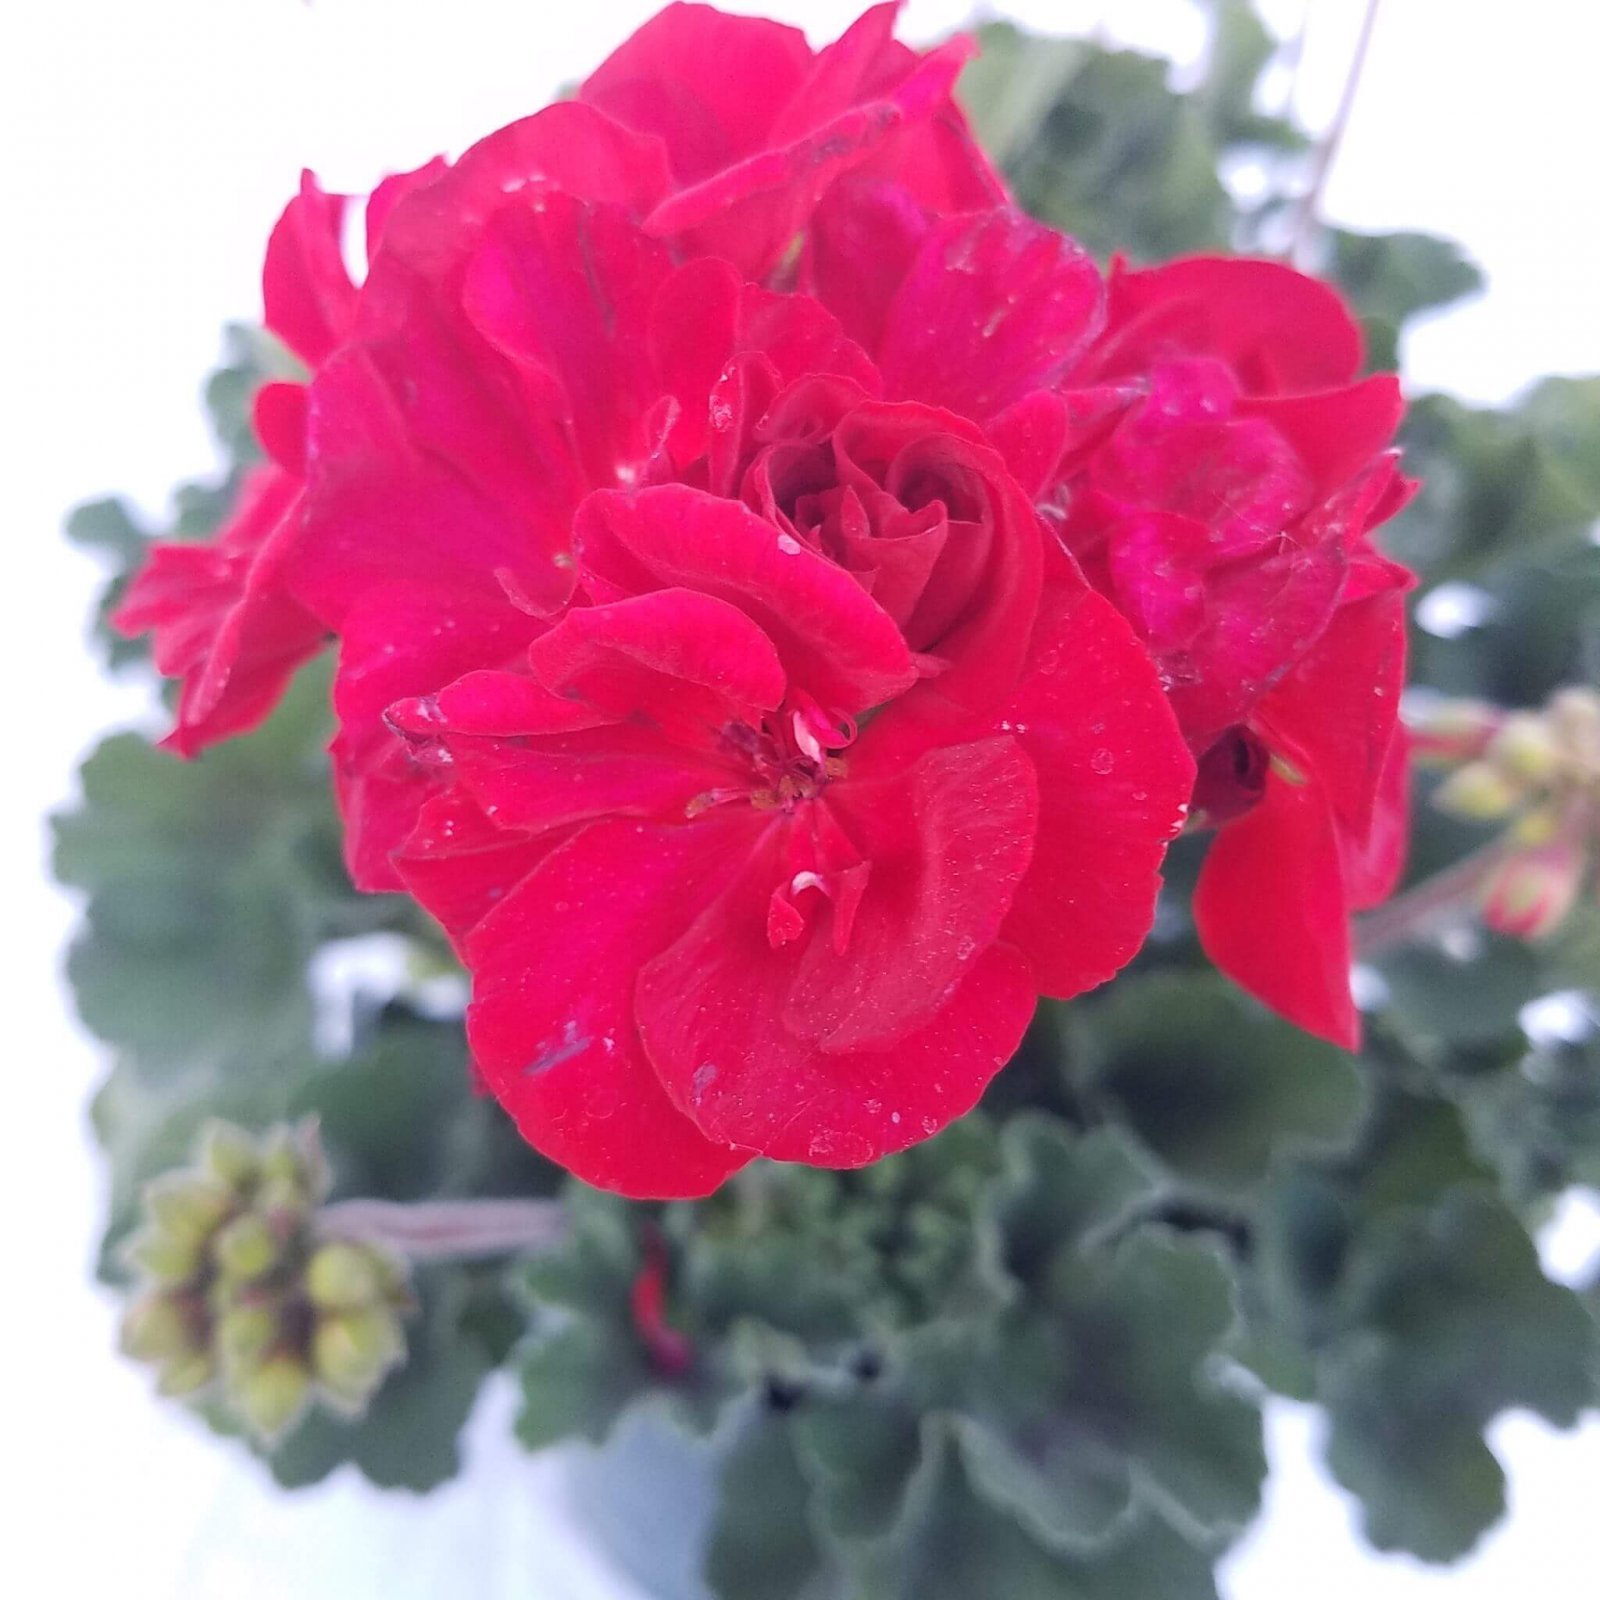 Geranium 'Fantasia Dark Red' - 6 1/2